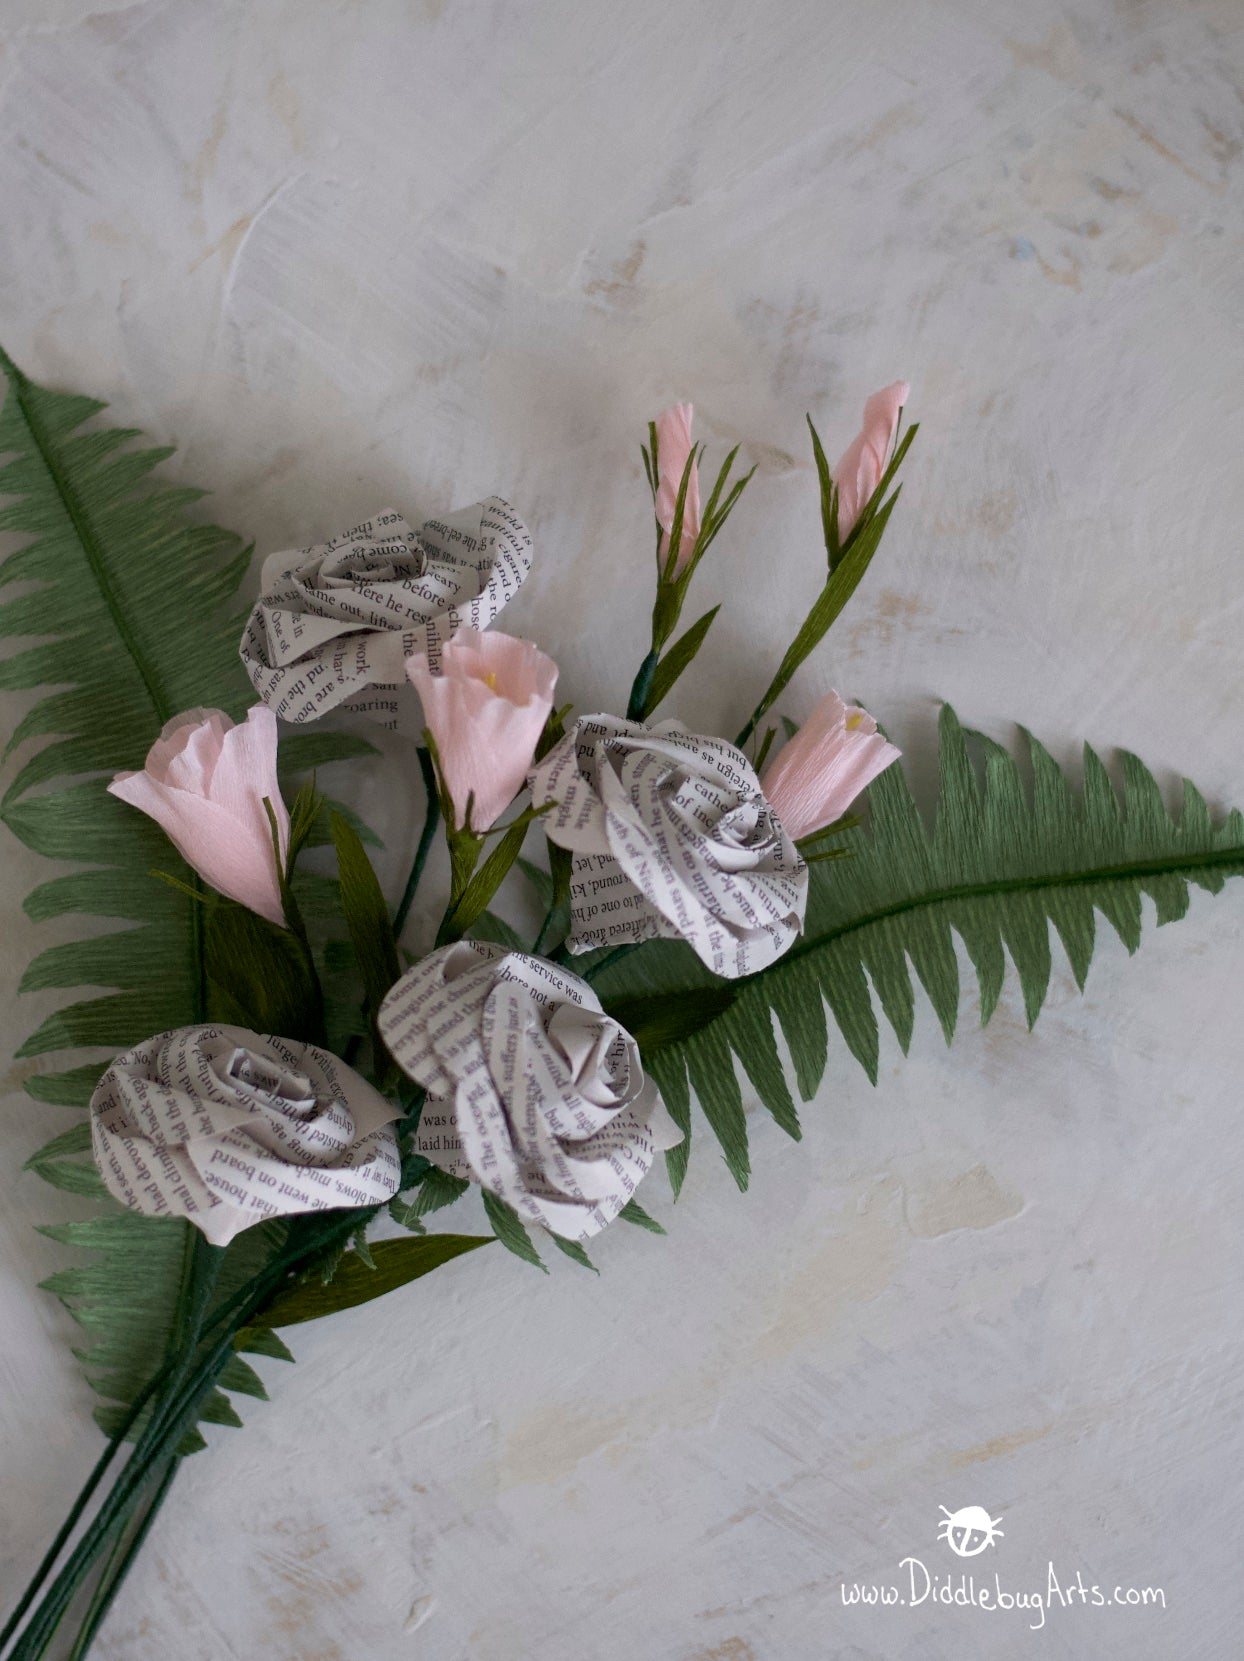 crepe paper lisianthus stem with paper ferns and book page roses